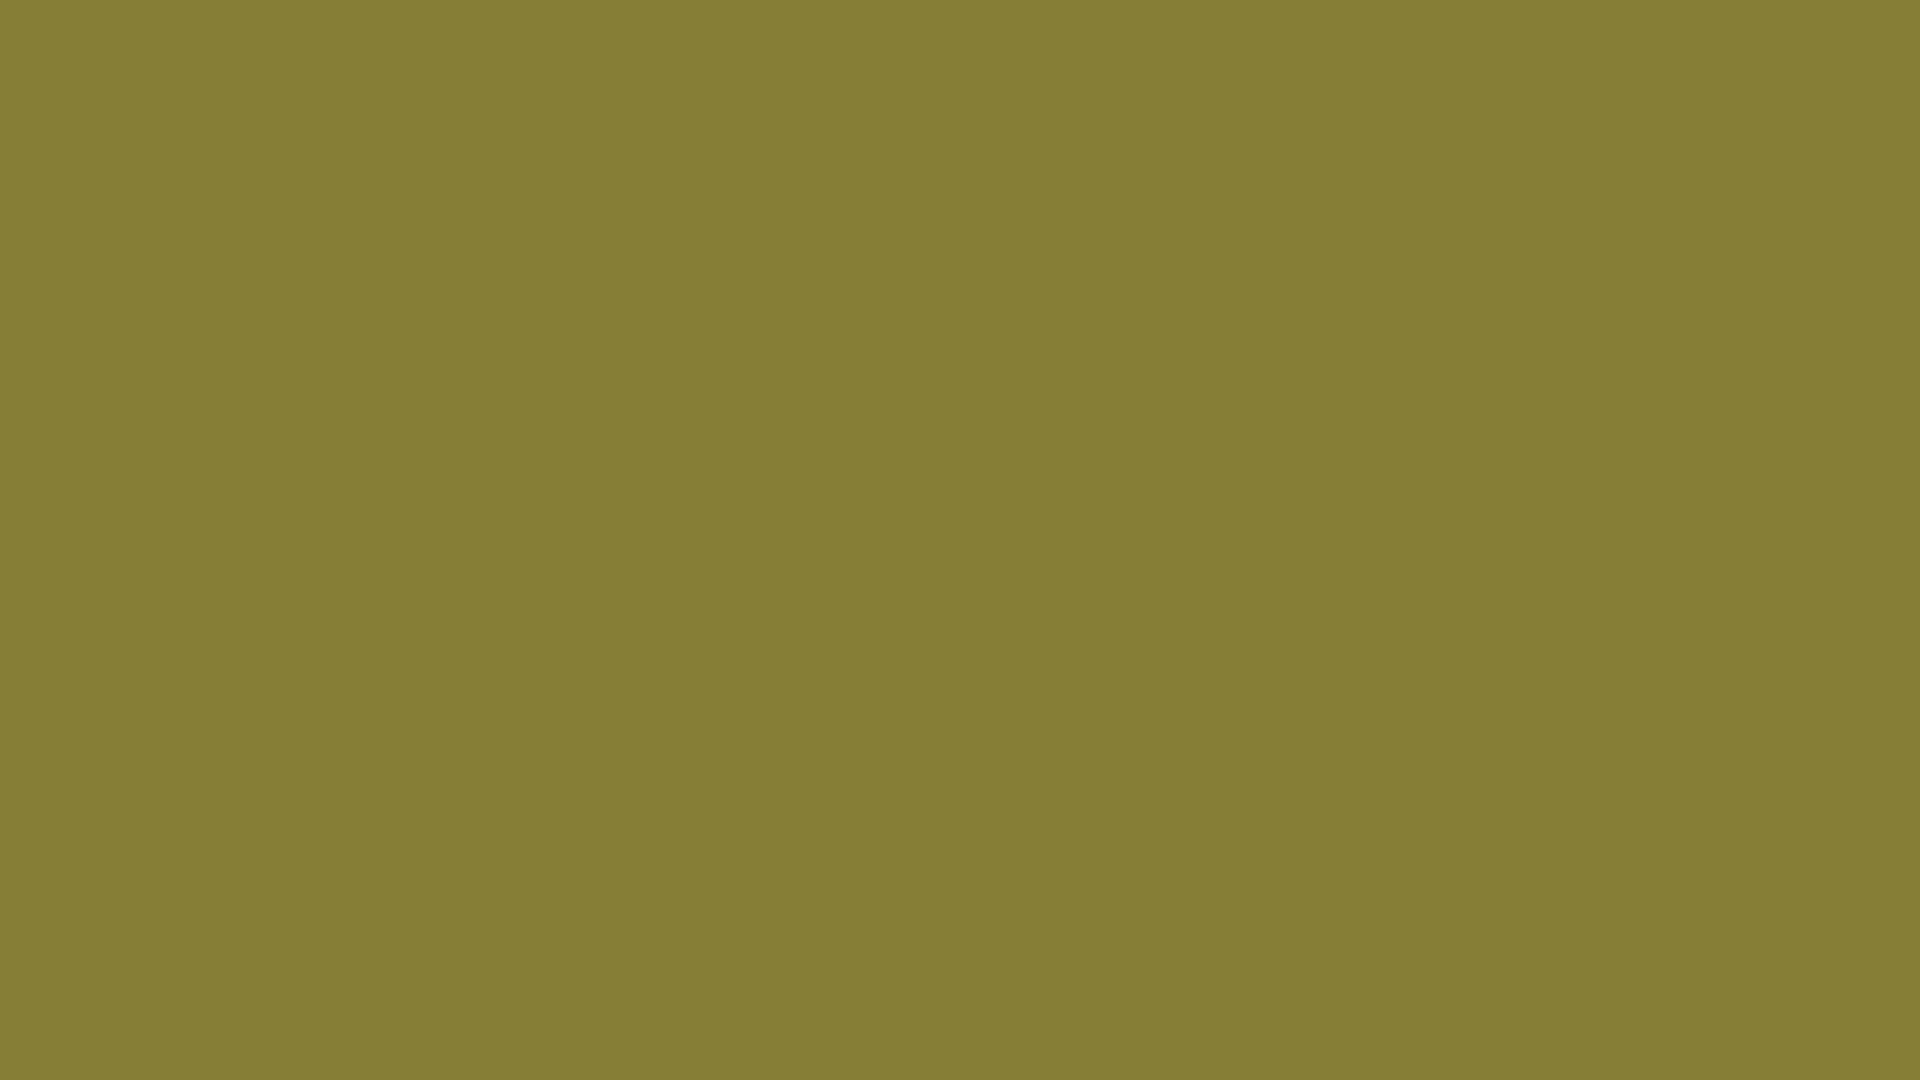 1920x1080 Old Moss Green Solid Color Background